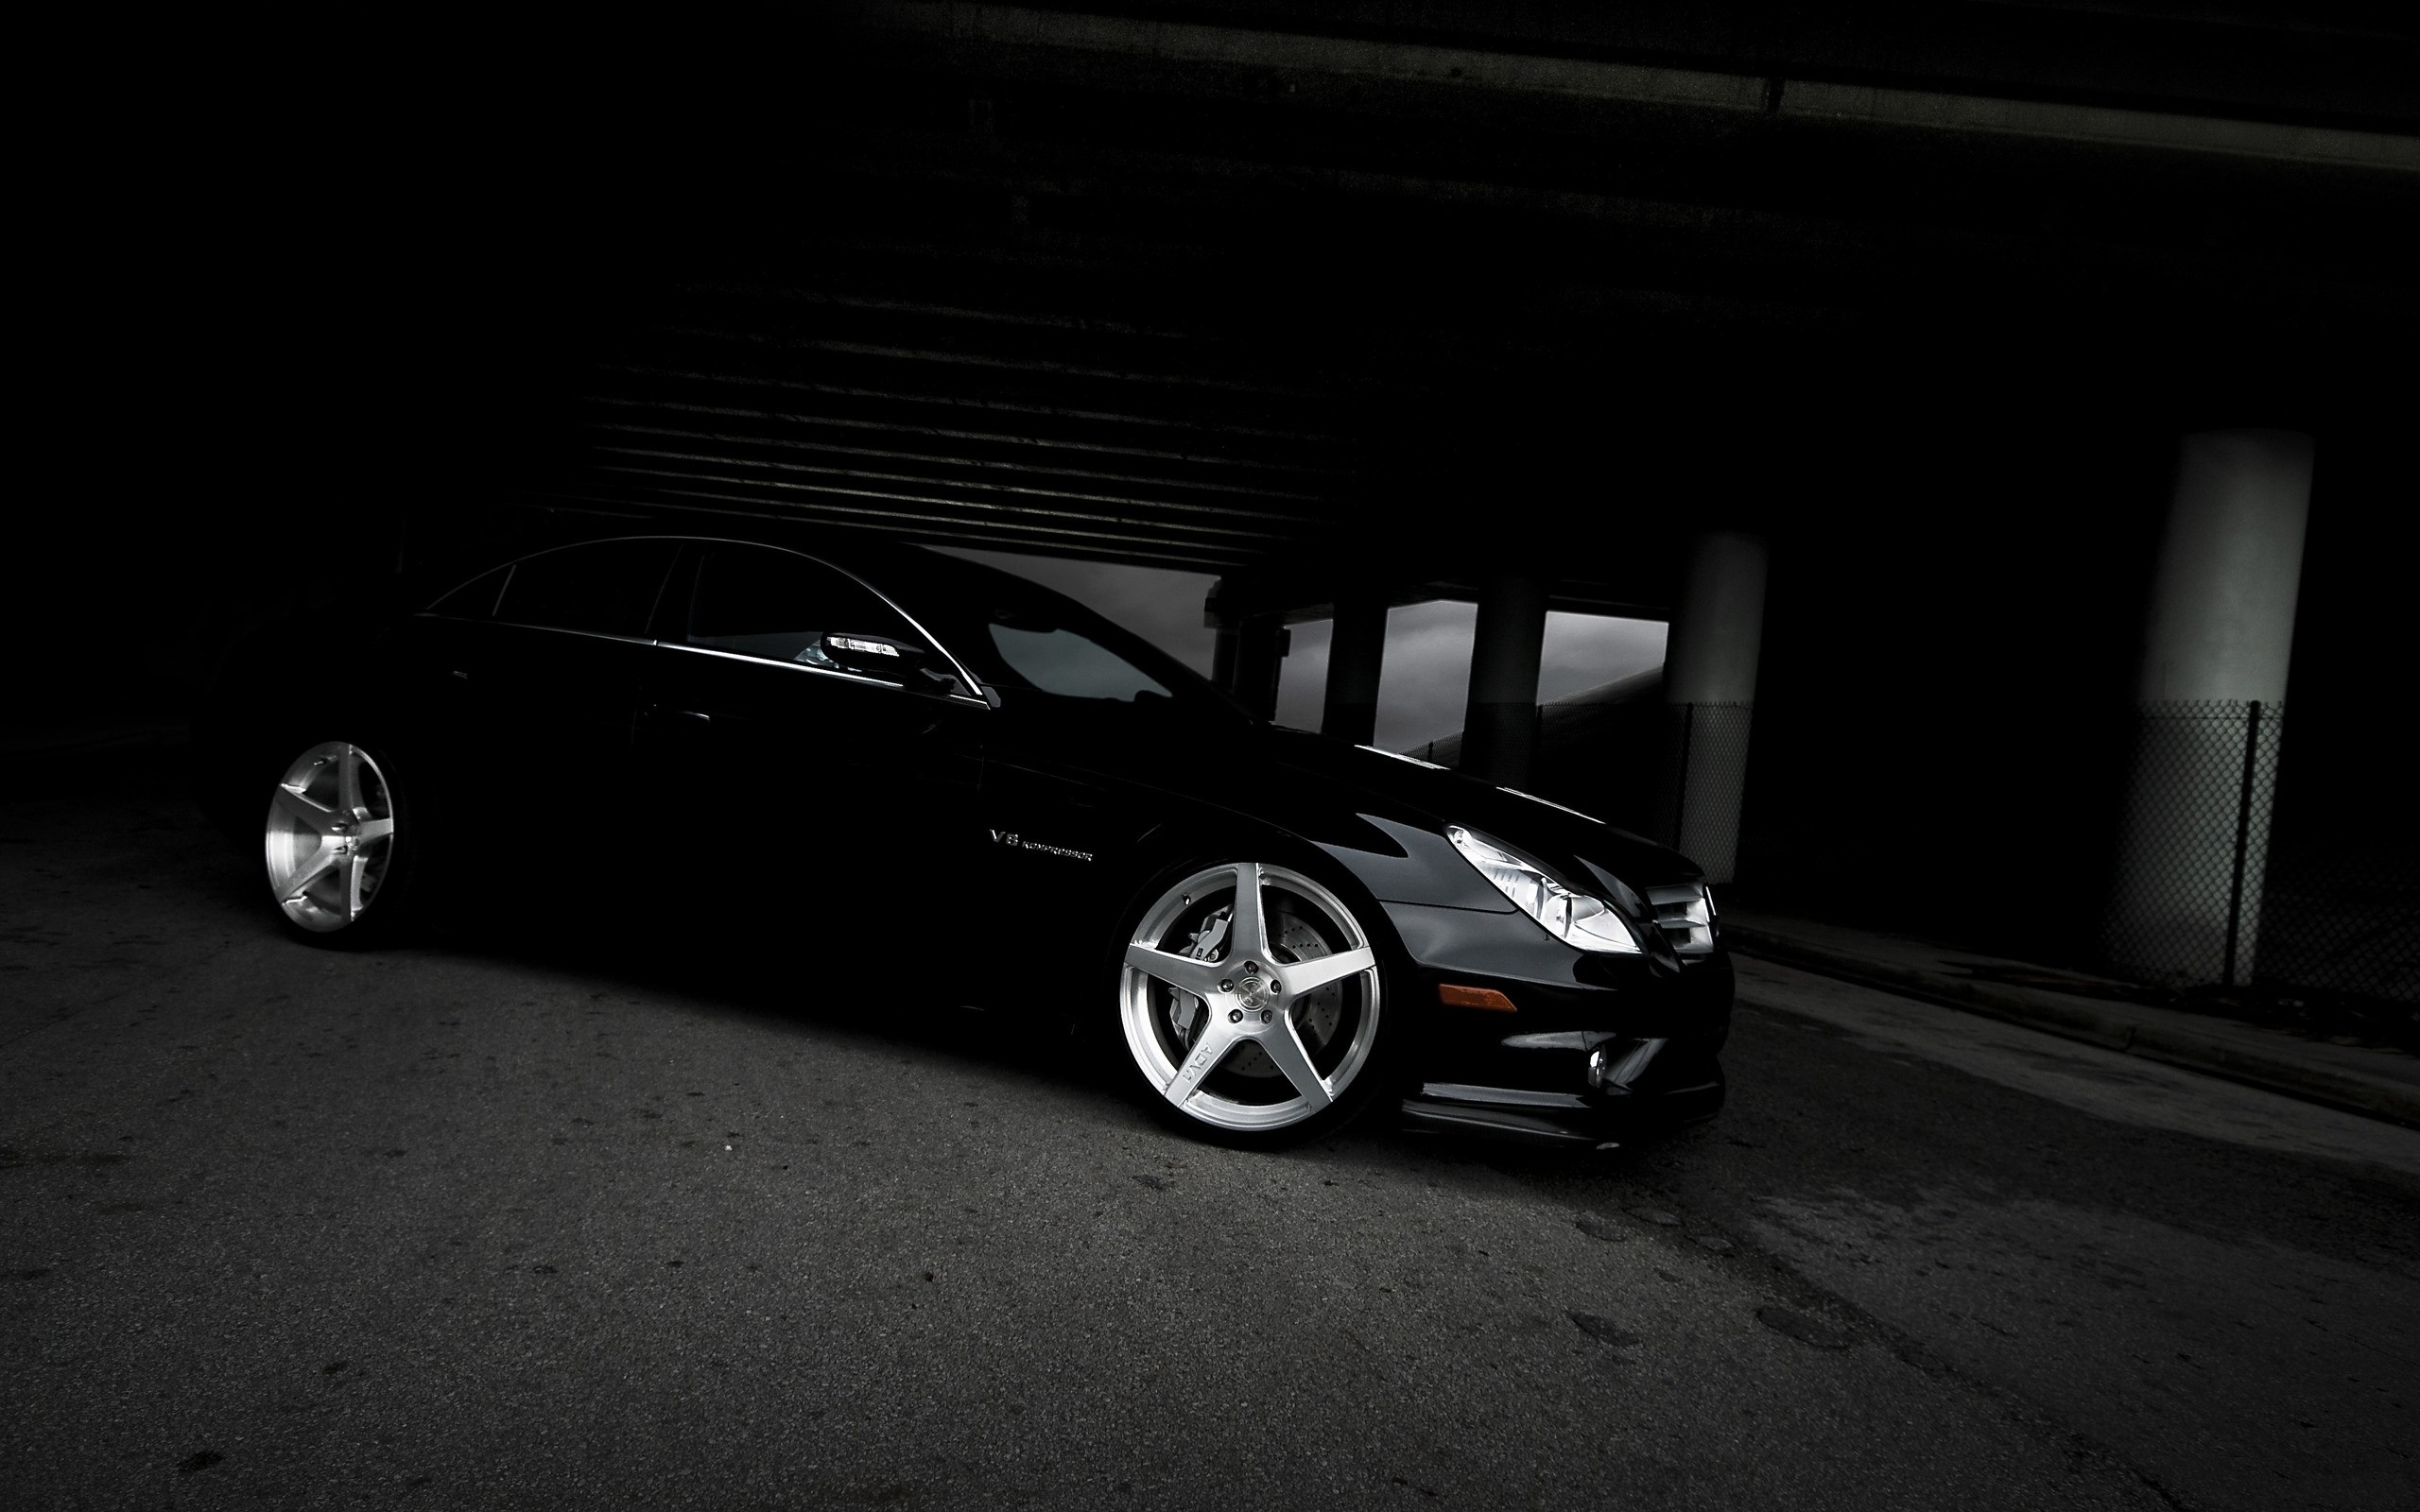 While we receive compensation when you click links to. 50 Mercedes Benz Logo Wallpaper For Android Pics Picture Idokeren